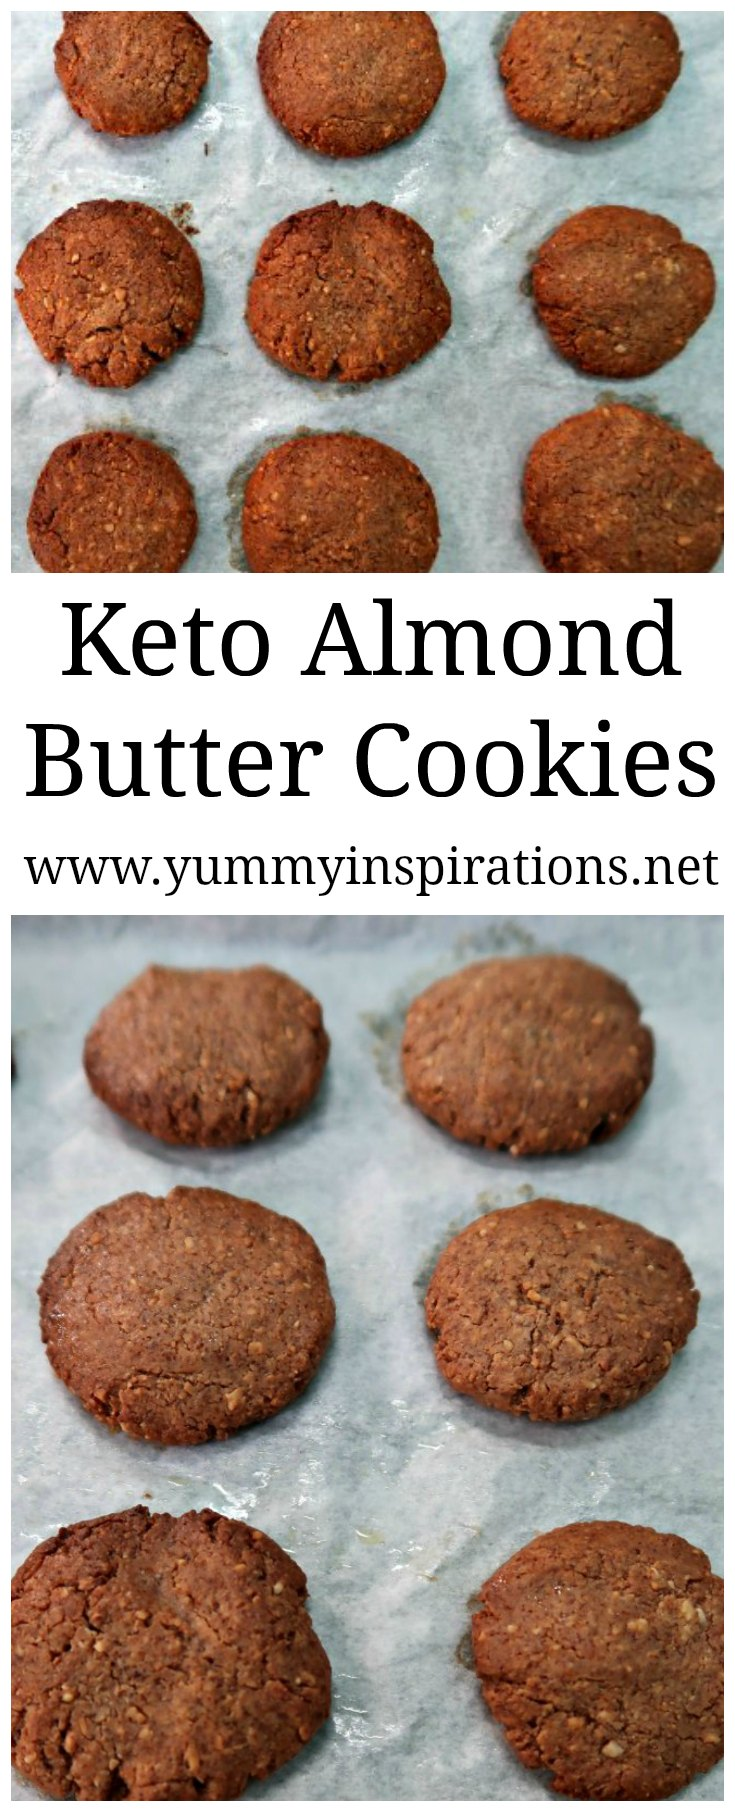 Keto Almond Butter Cookies - Easy Low Carb Cookies with only 3 ingredients - Almond Butter, Eggs and Stevia. Completely flourless, Paleo, Whole 30 and gluten free too.